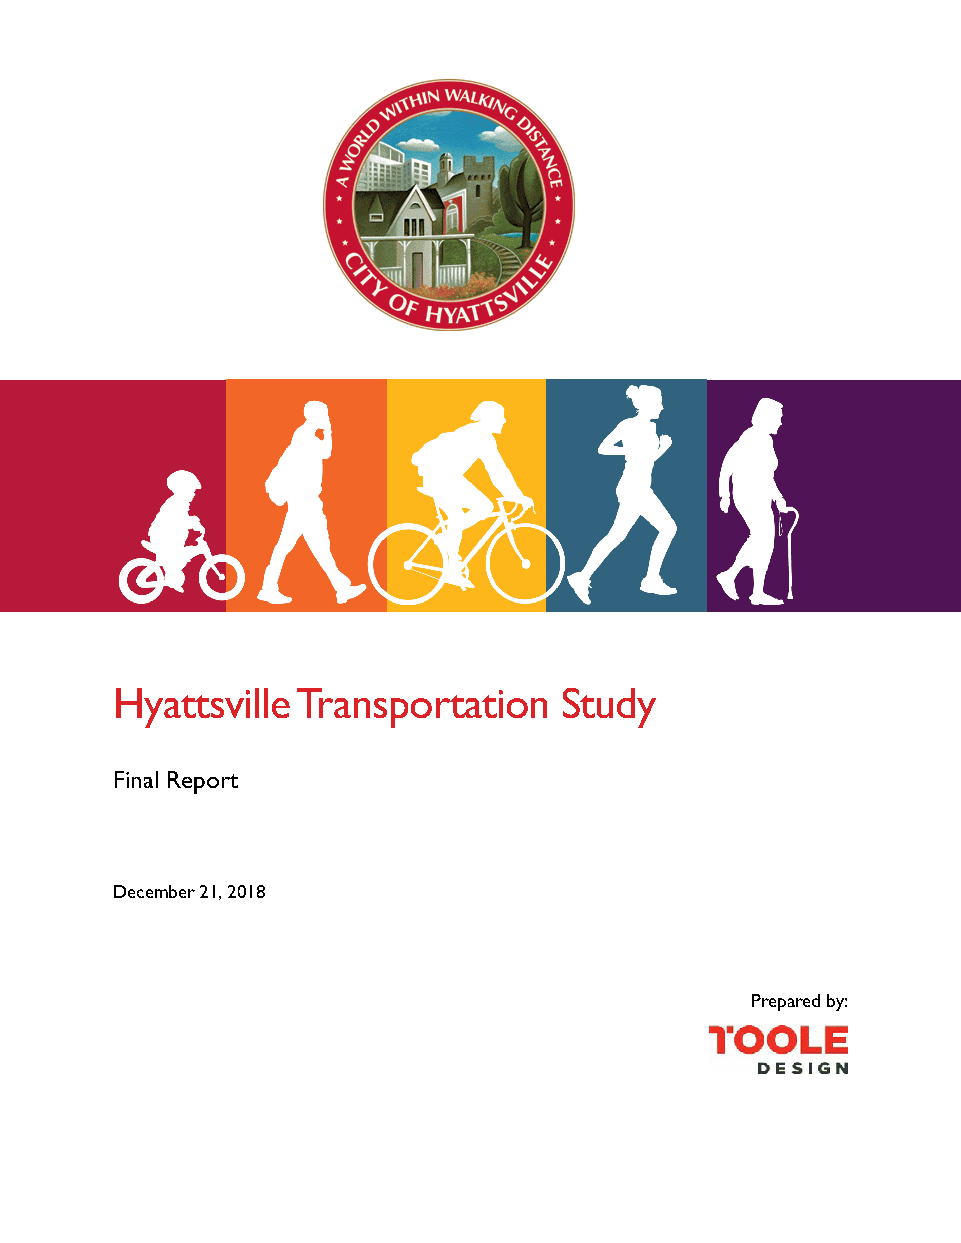 Transportation Study Cover